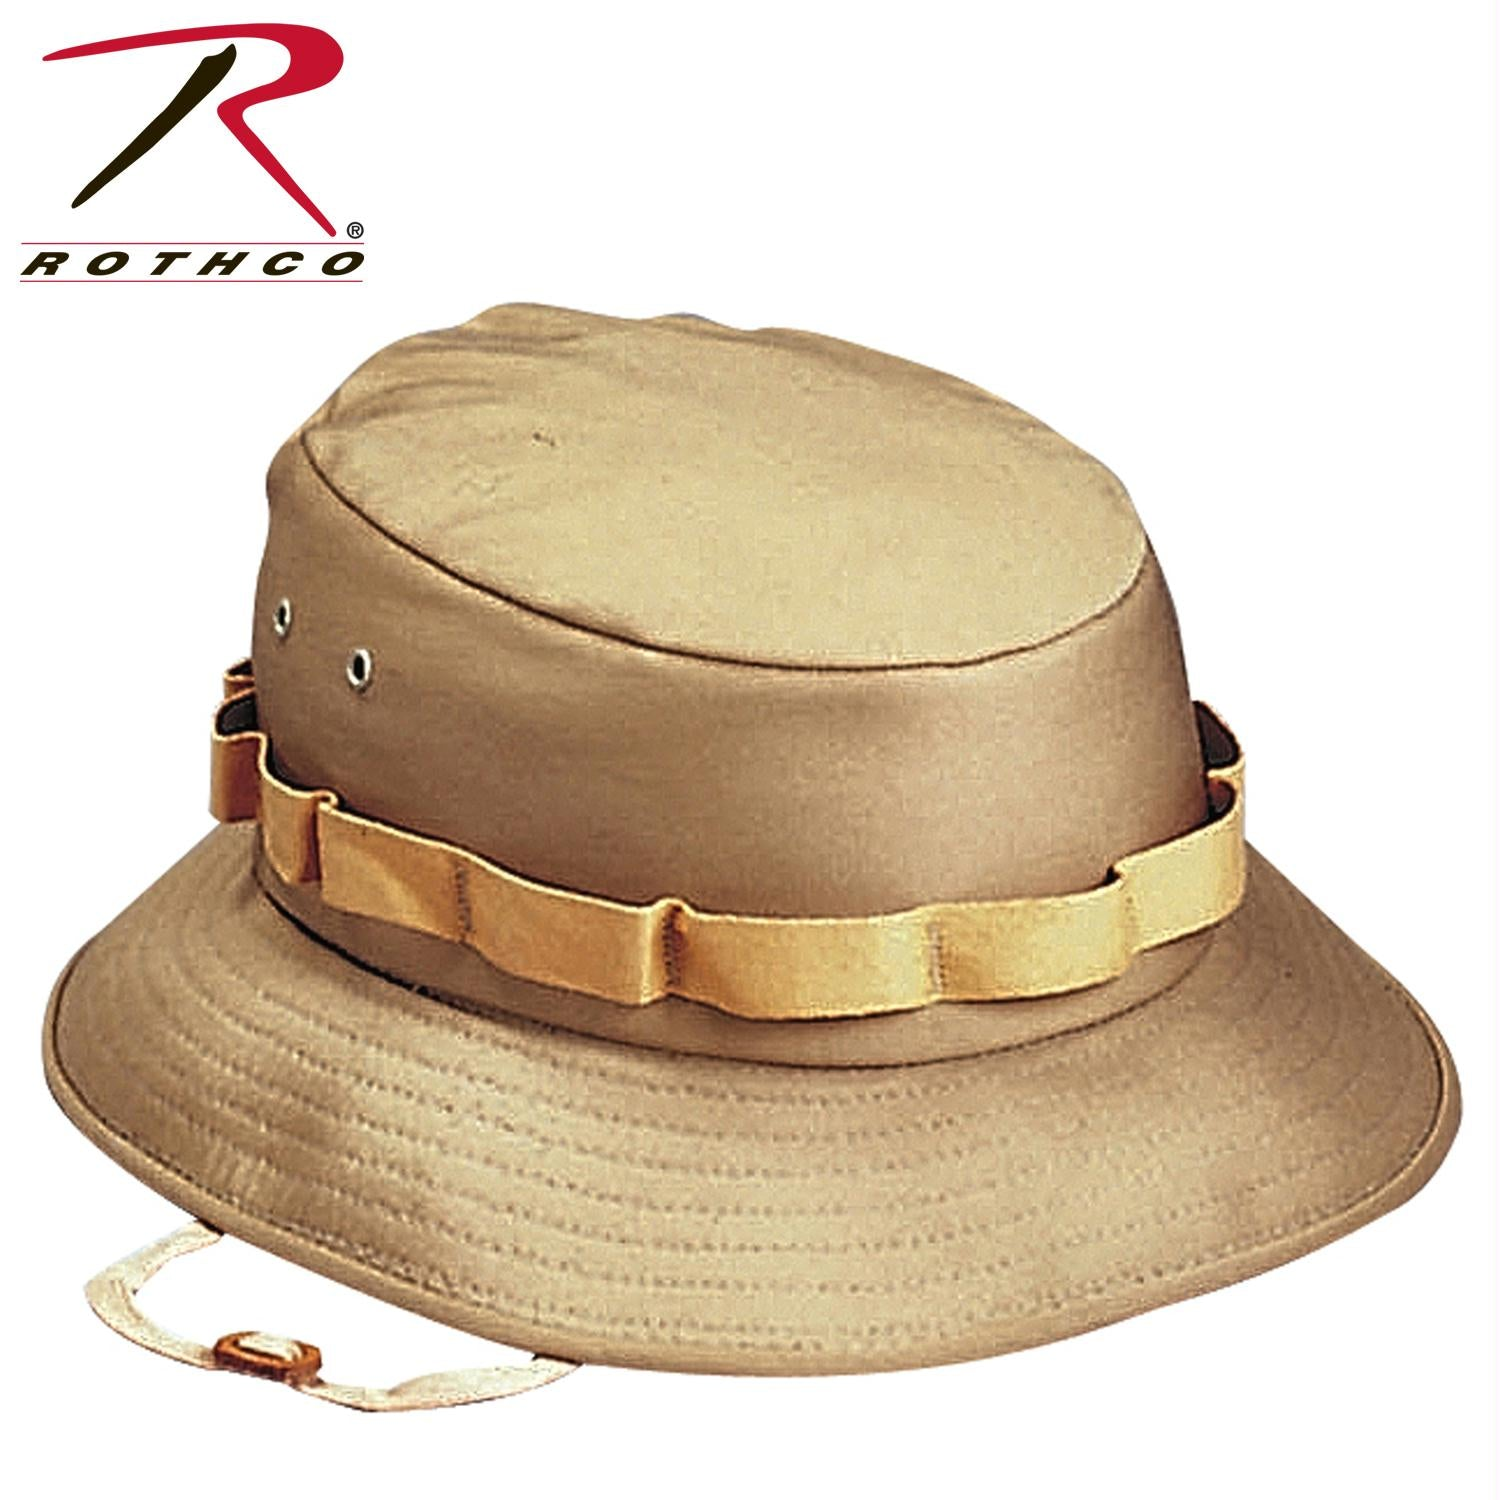 Rothco Jungle Hat - Khaki / L